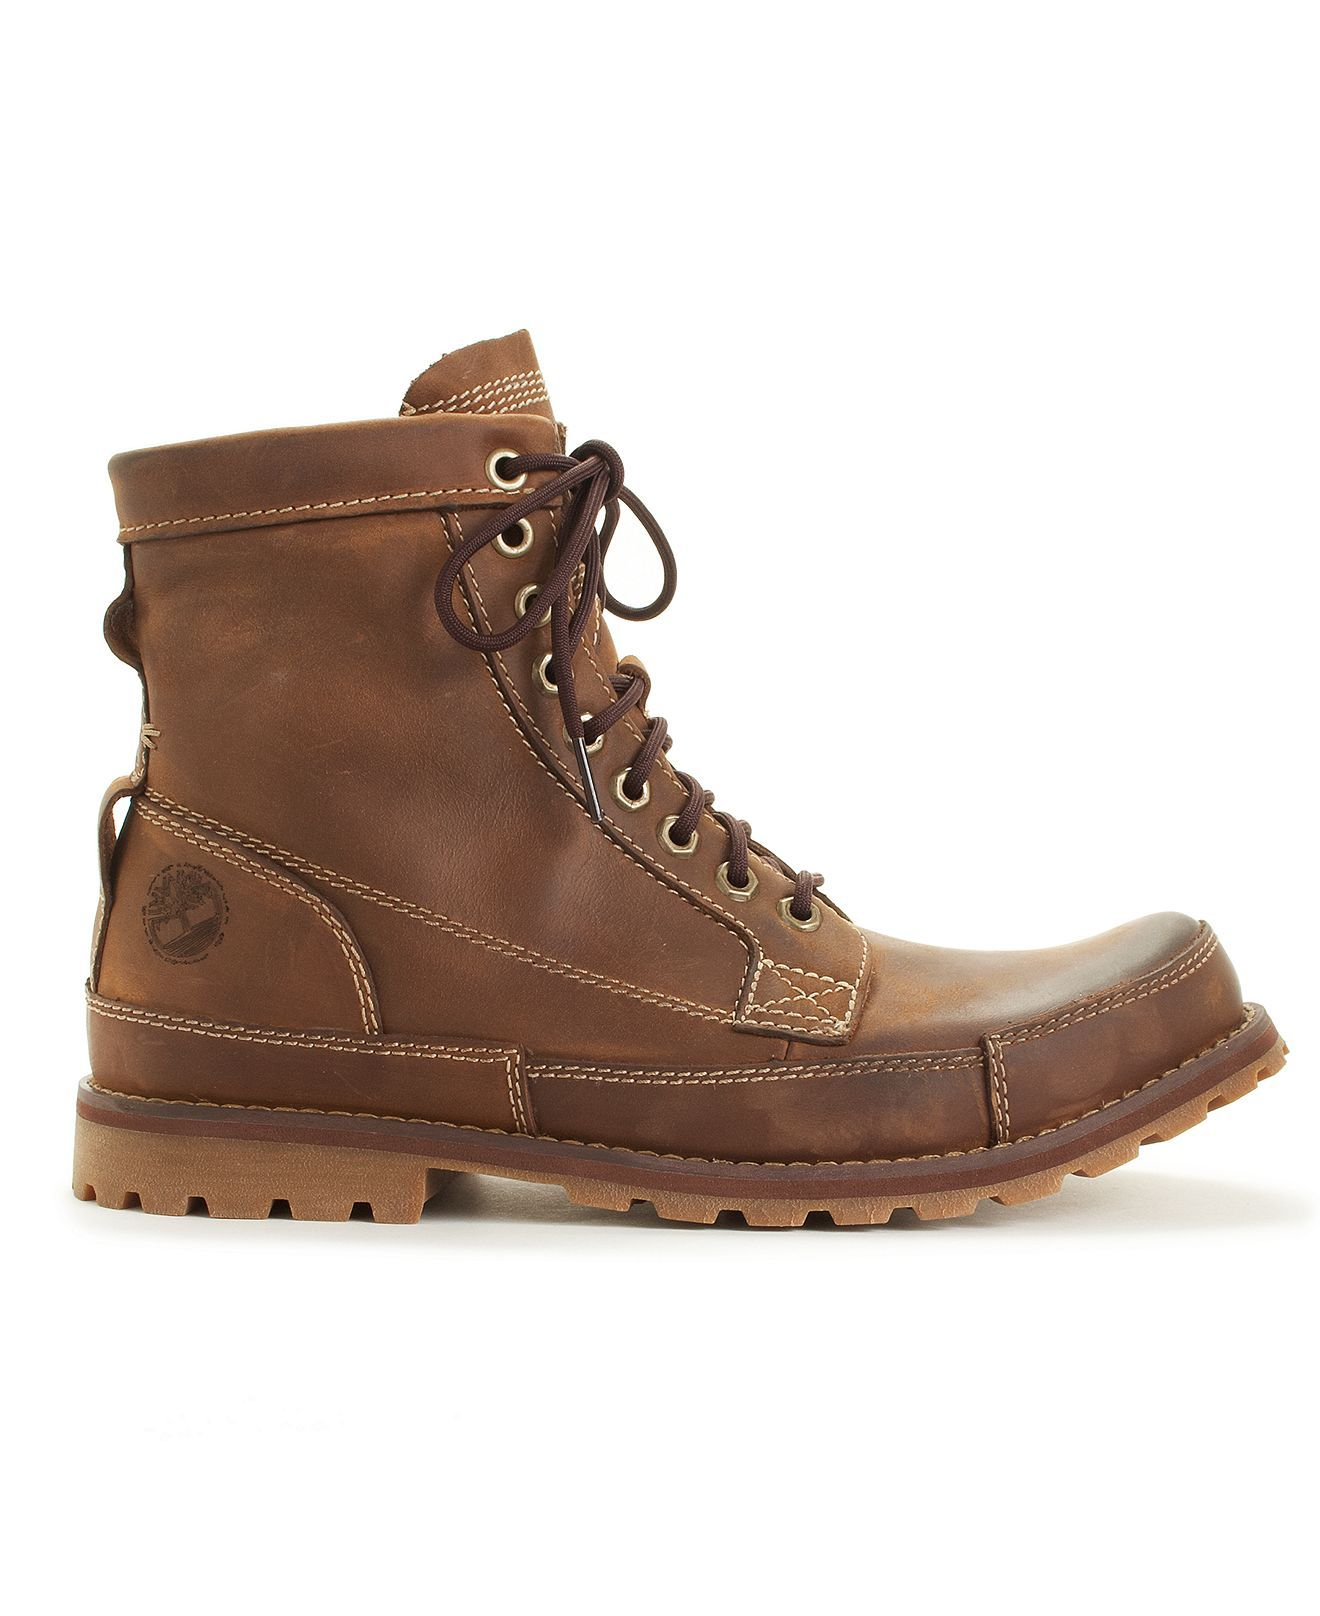 141633c1555 Men's Earthkeeper Original 6 Boot | Dressing Hubby | Mens shoes ...